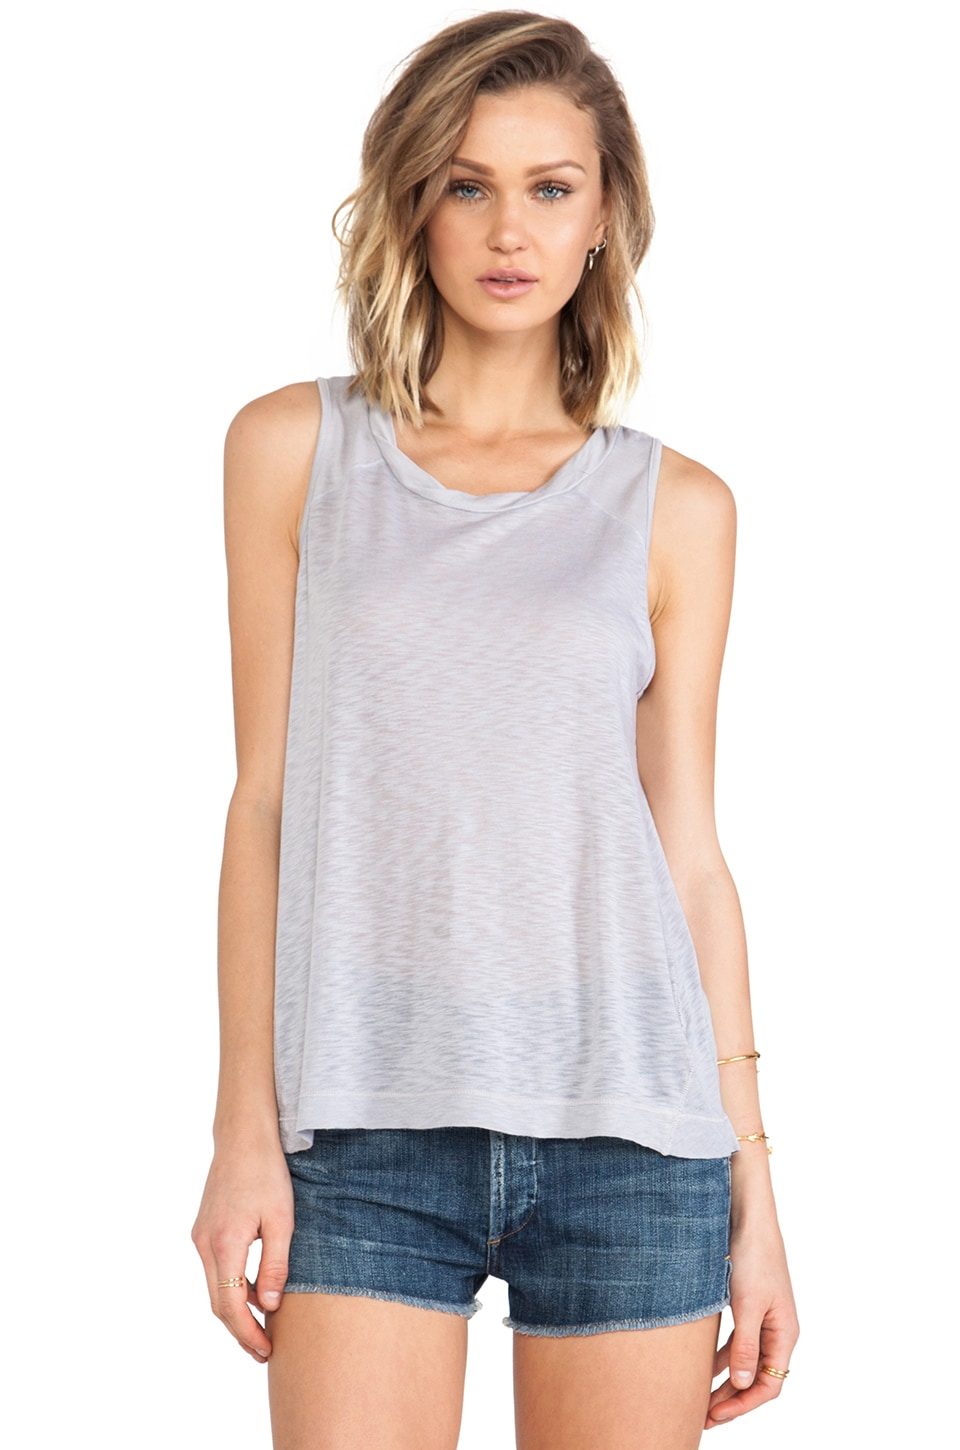 Splendid Slub Tank in Dove Grey